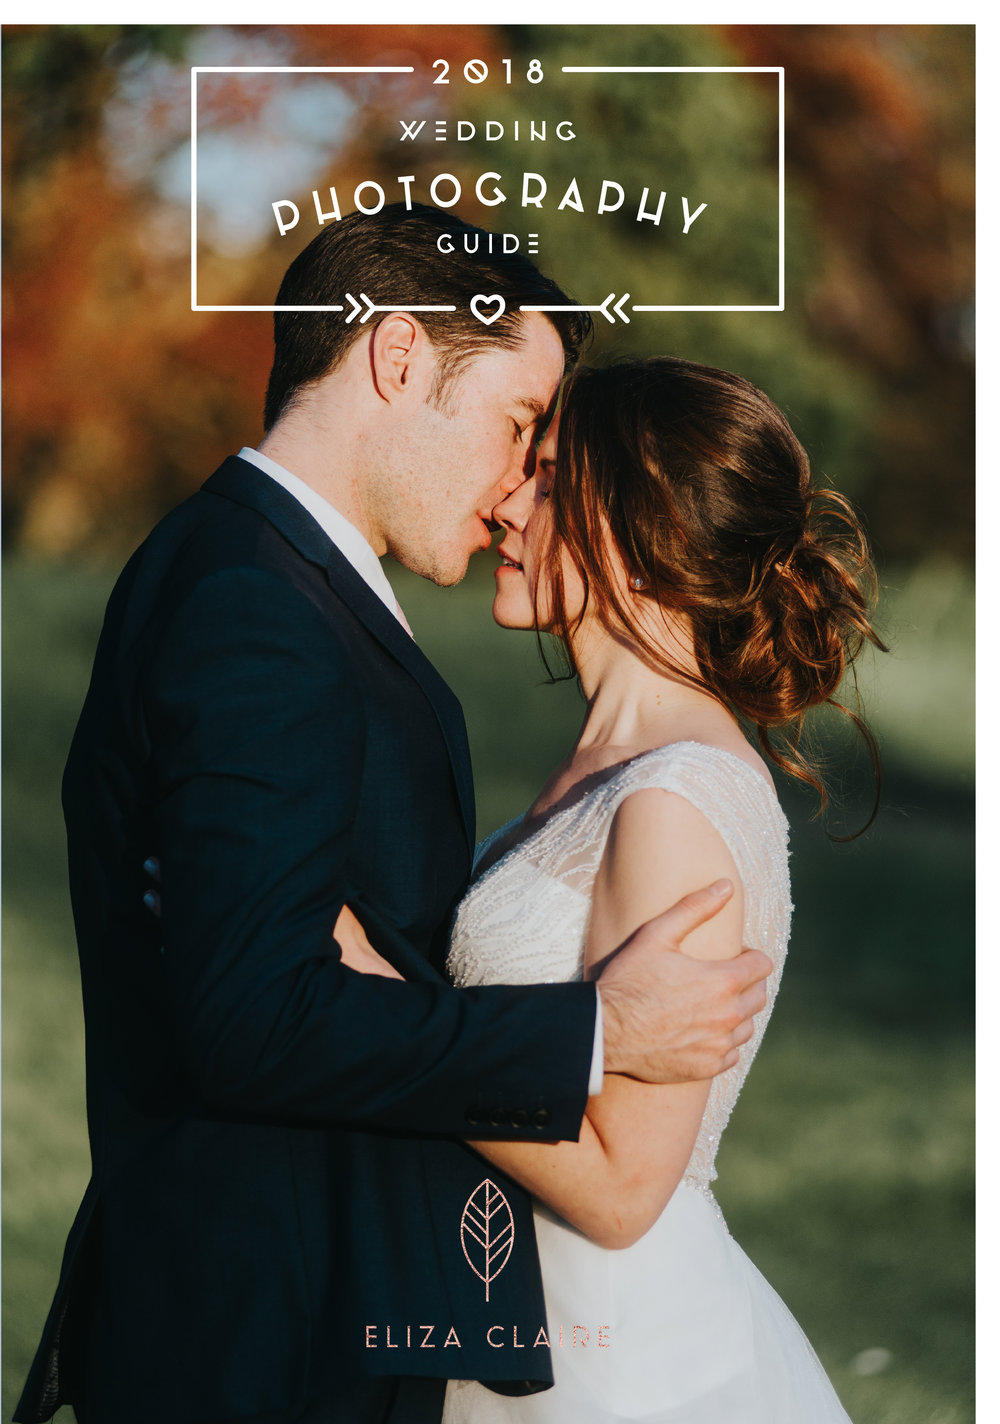 2018 Wedding Photography Guide